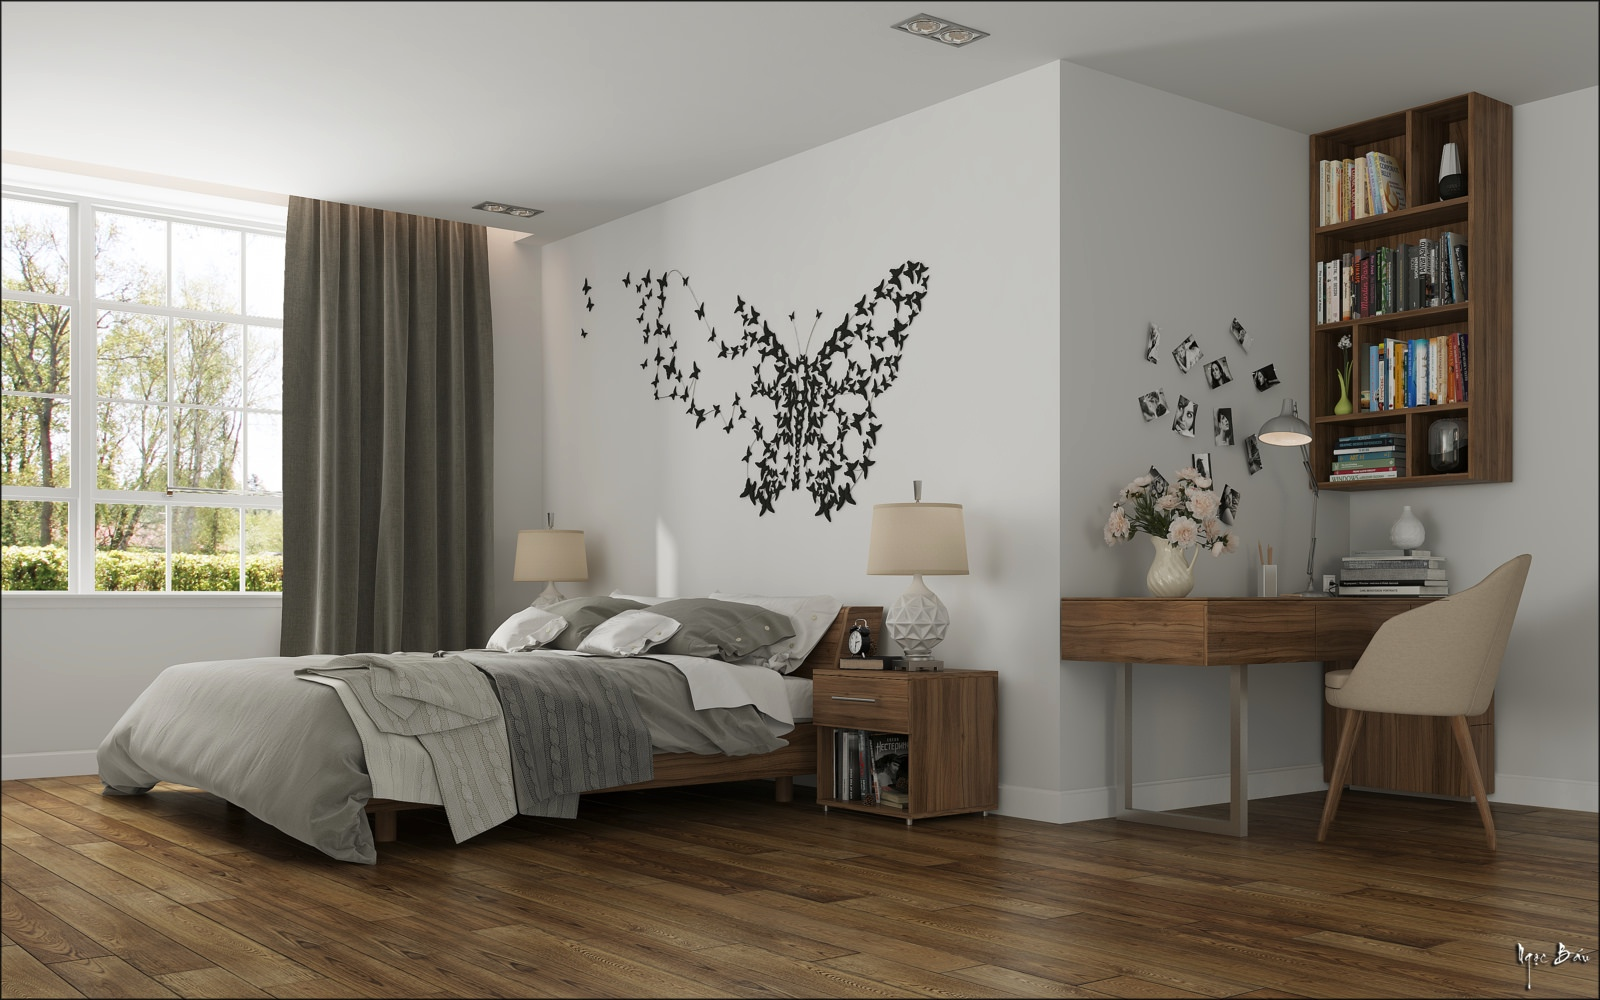 Bedroom butterfly wall art interior design ideas for Bedroom wall decor